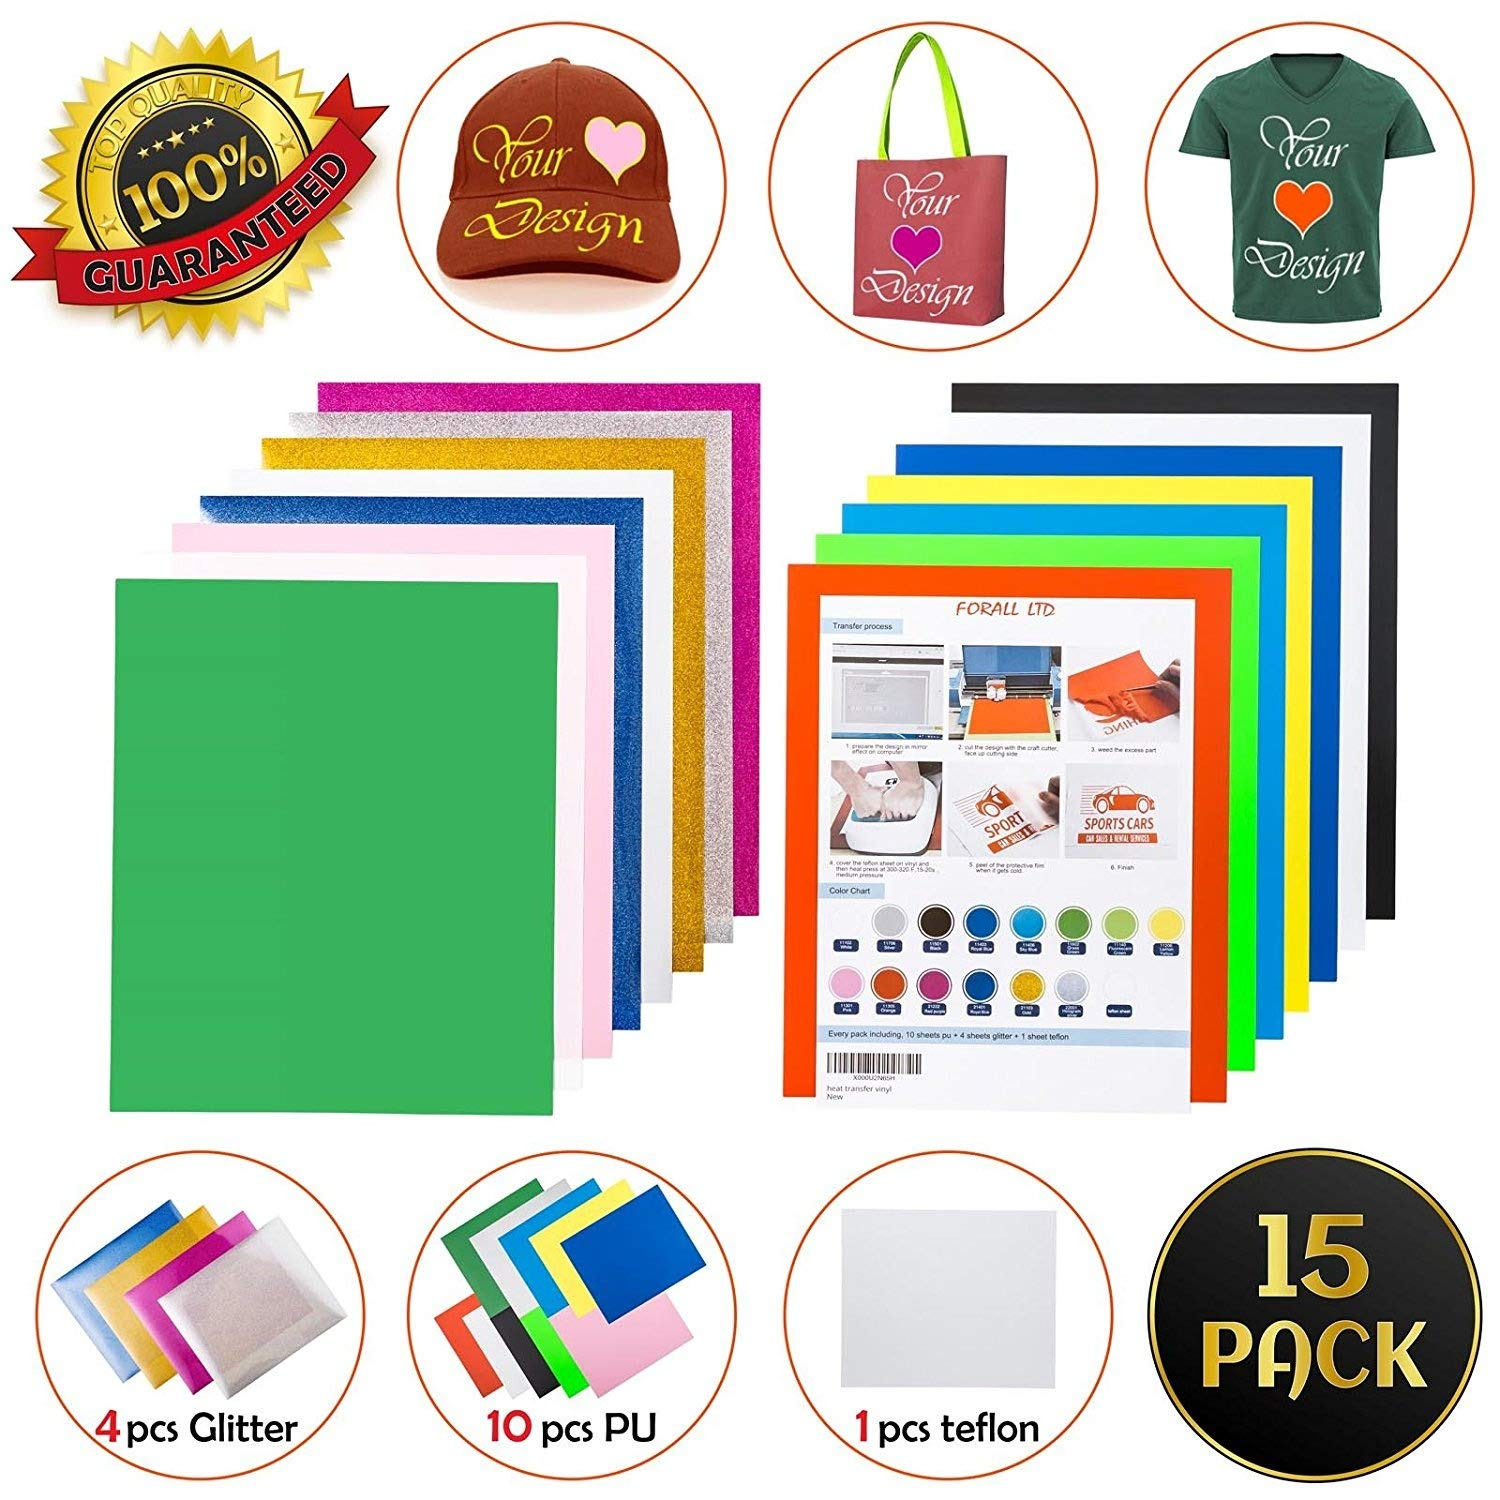 Heat Transfer Vinyl, Forall Ltd Pack of 10 Assorted Colors Easy Weed Iron on HTV with 1 Teflon & 4 Glitter Sheets for T-Shirts, Hats, Bags & Apparel Designs, Hobbies & Crafts, DIY Gift Set